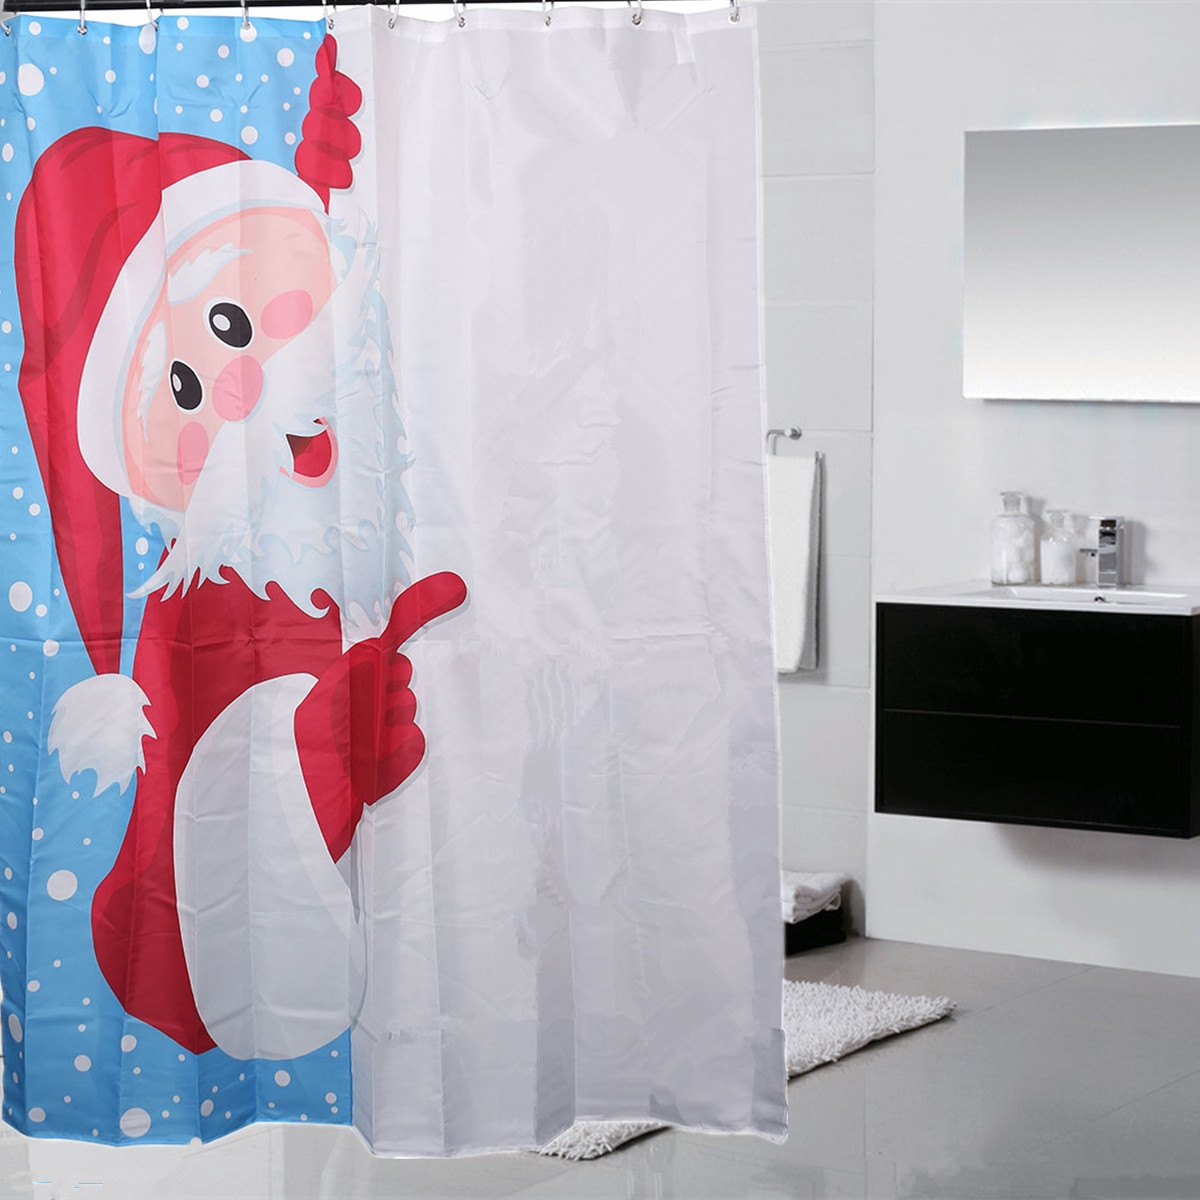 150x180cm 3D Santa Claus Waterproof Shower Curtain Bathroom ...